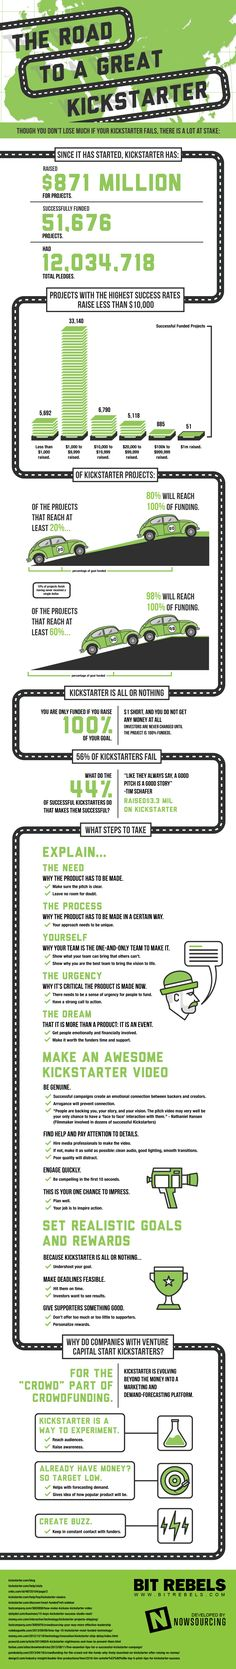 How To Setup A Successful Kickstarter Campaign #infographic